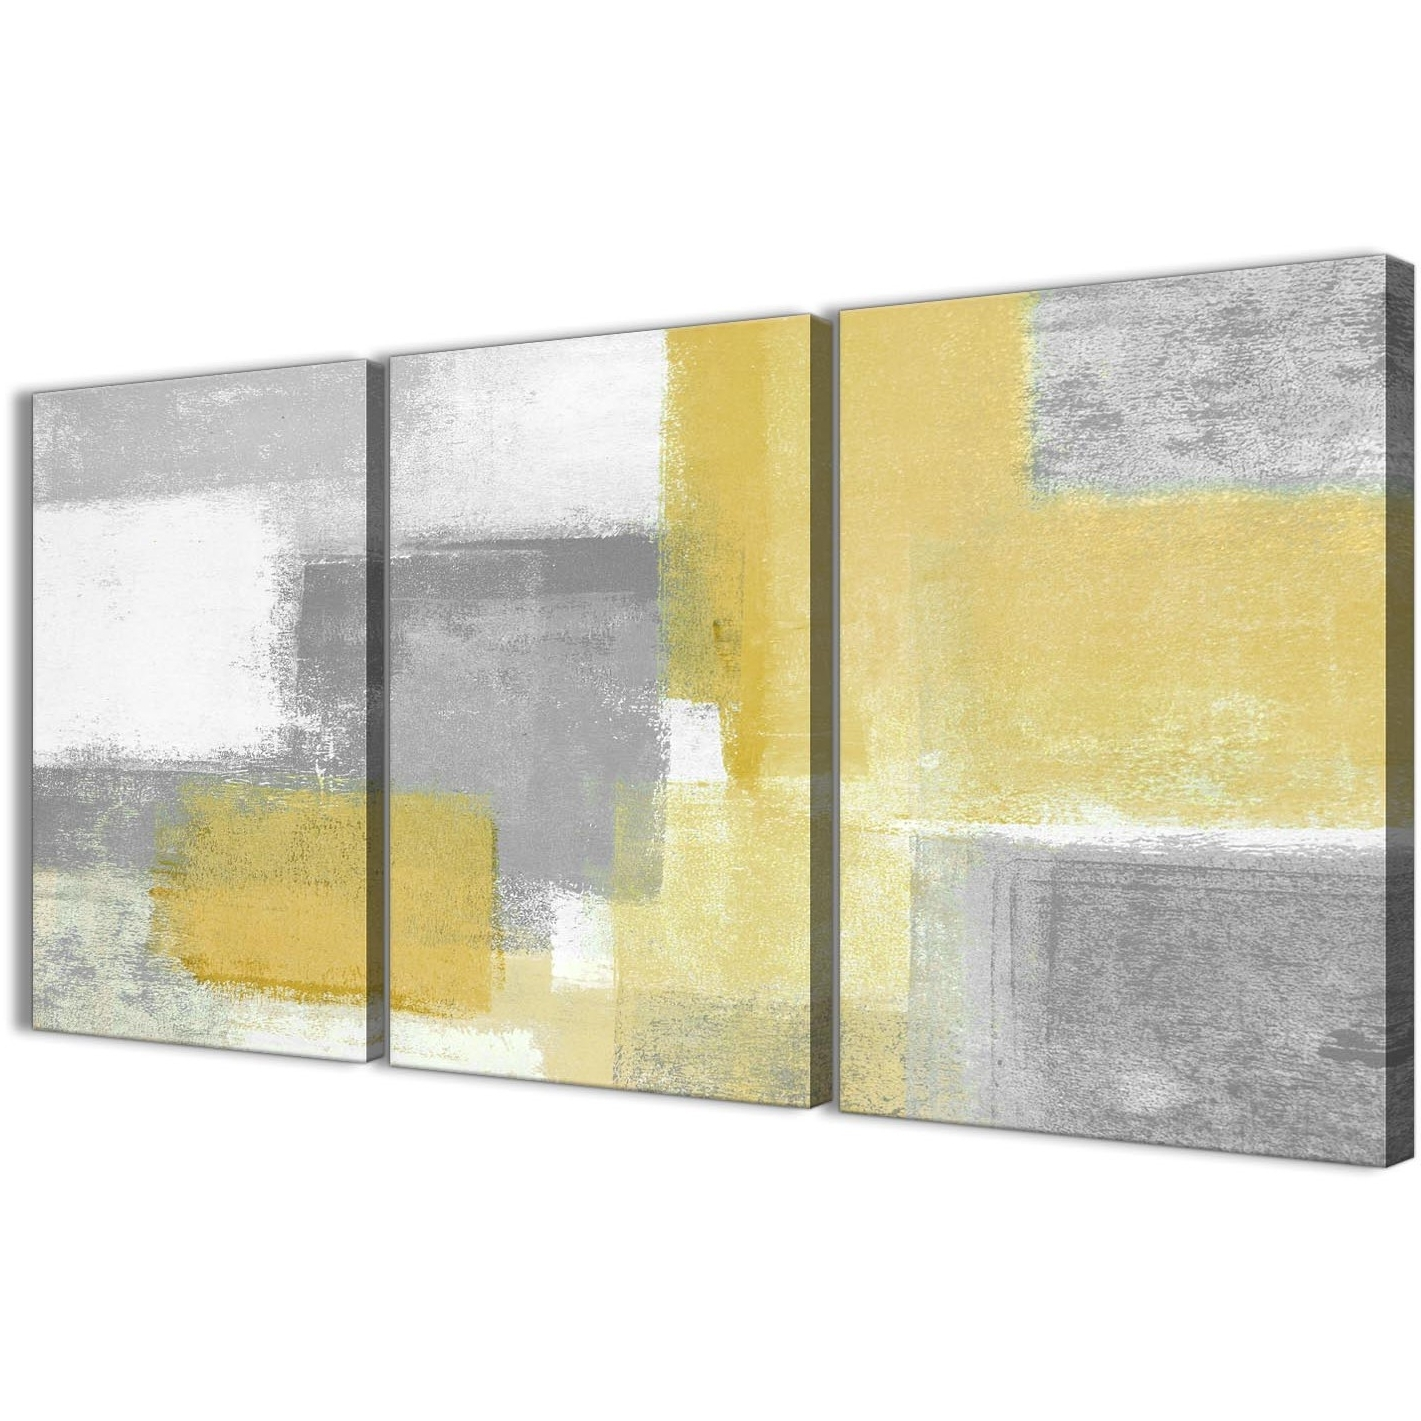 Most Current 3 Piece Canvas Wall Art Throughout 3 Panel Mustard Yellow Grey Kitchen Canvas Wall Art Decor – Abstract (View 13 of 20)